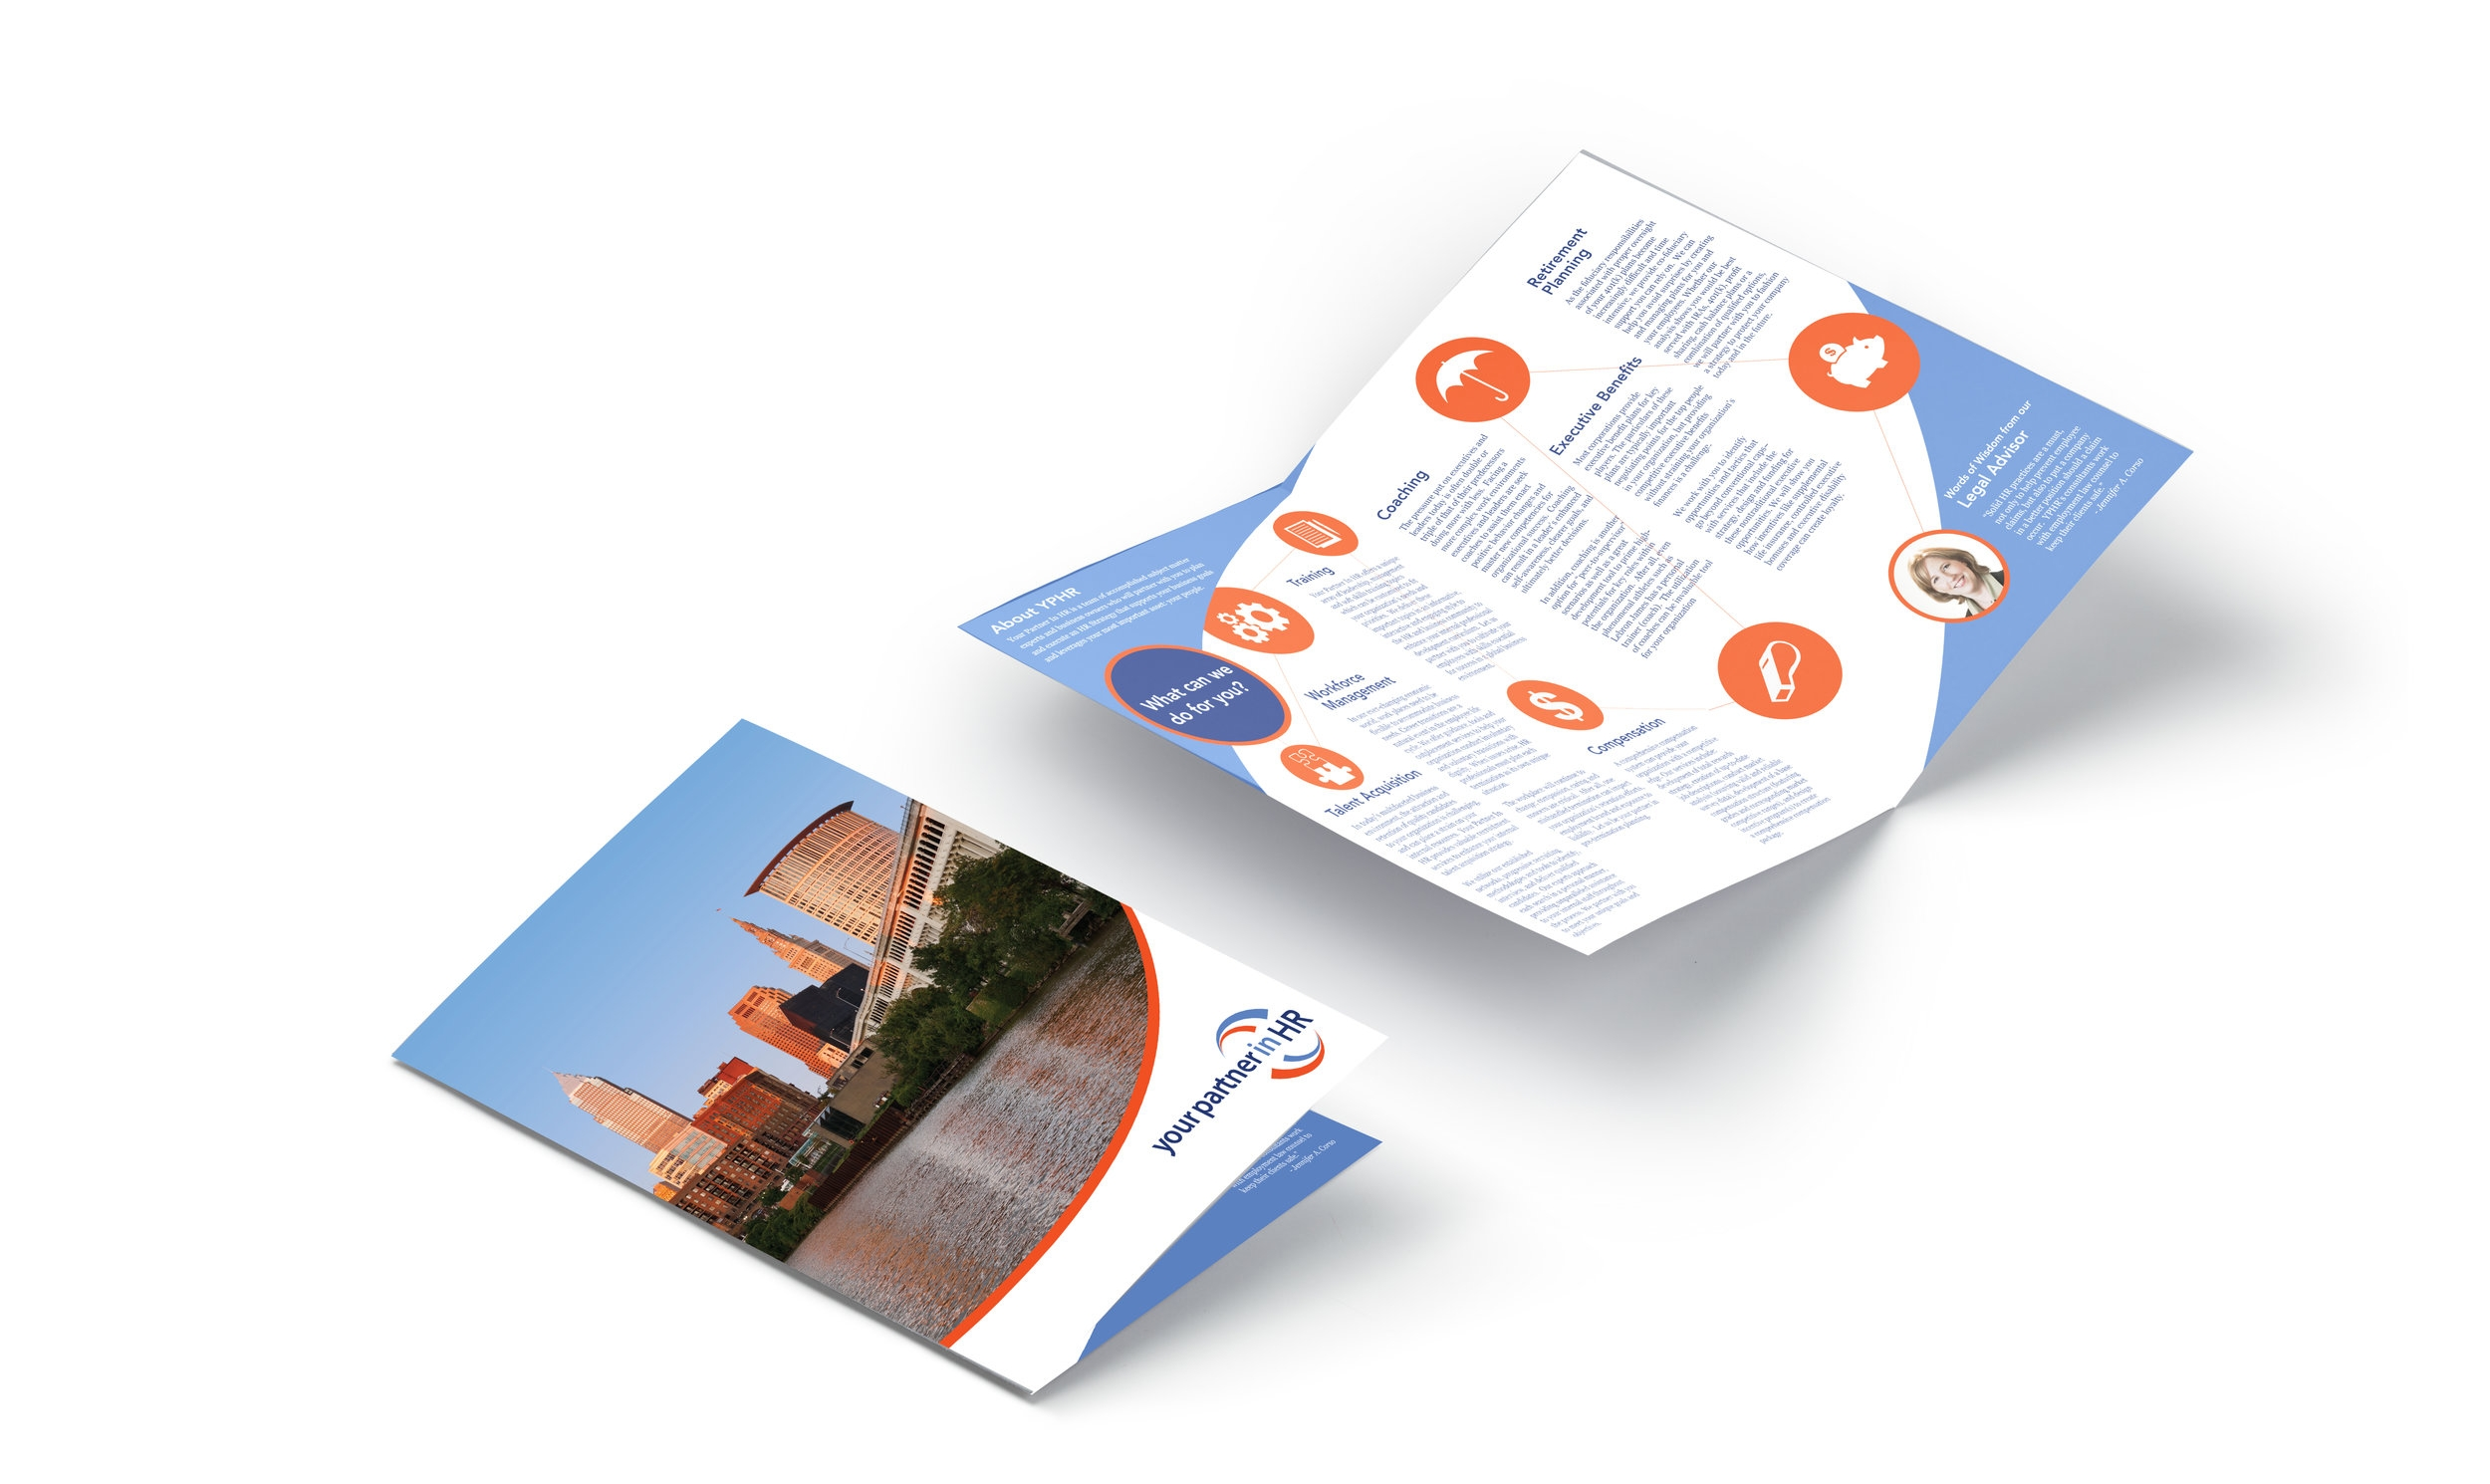 Capabilities brochure for Your Partner in HR. (Design by Leah Backo)